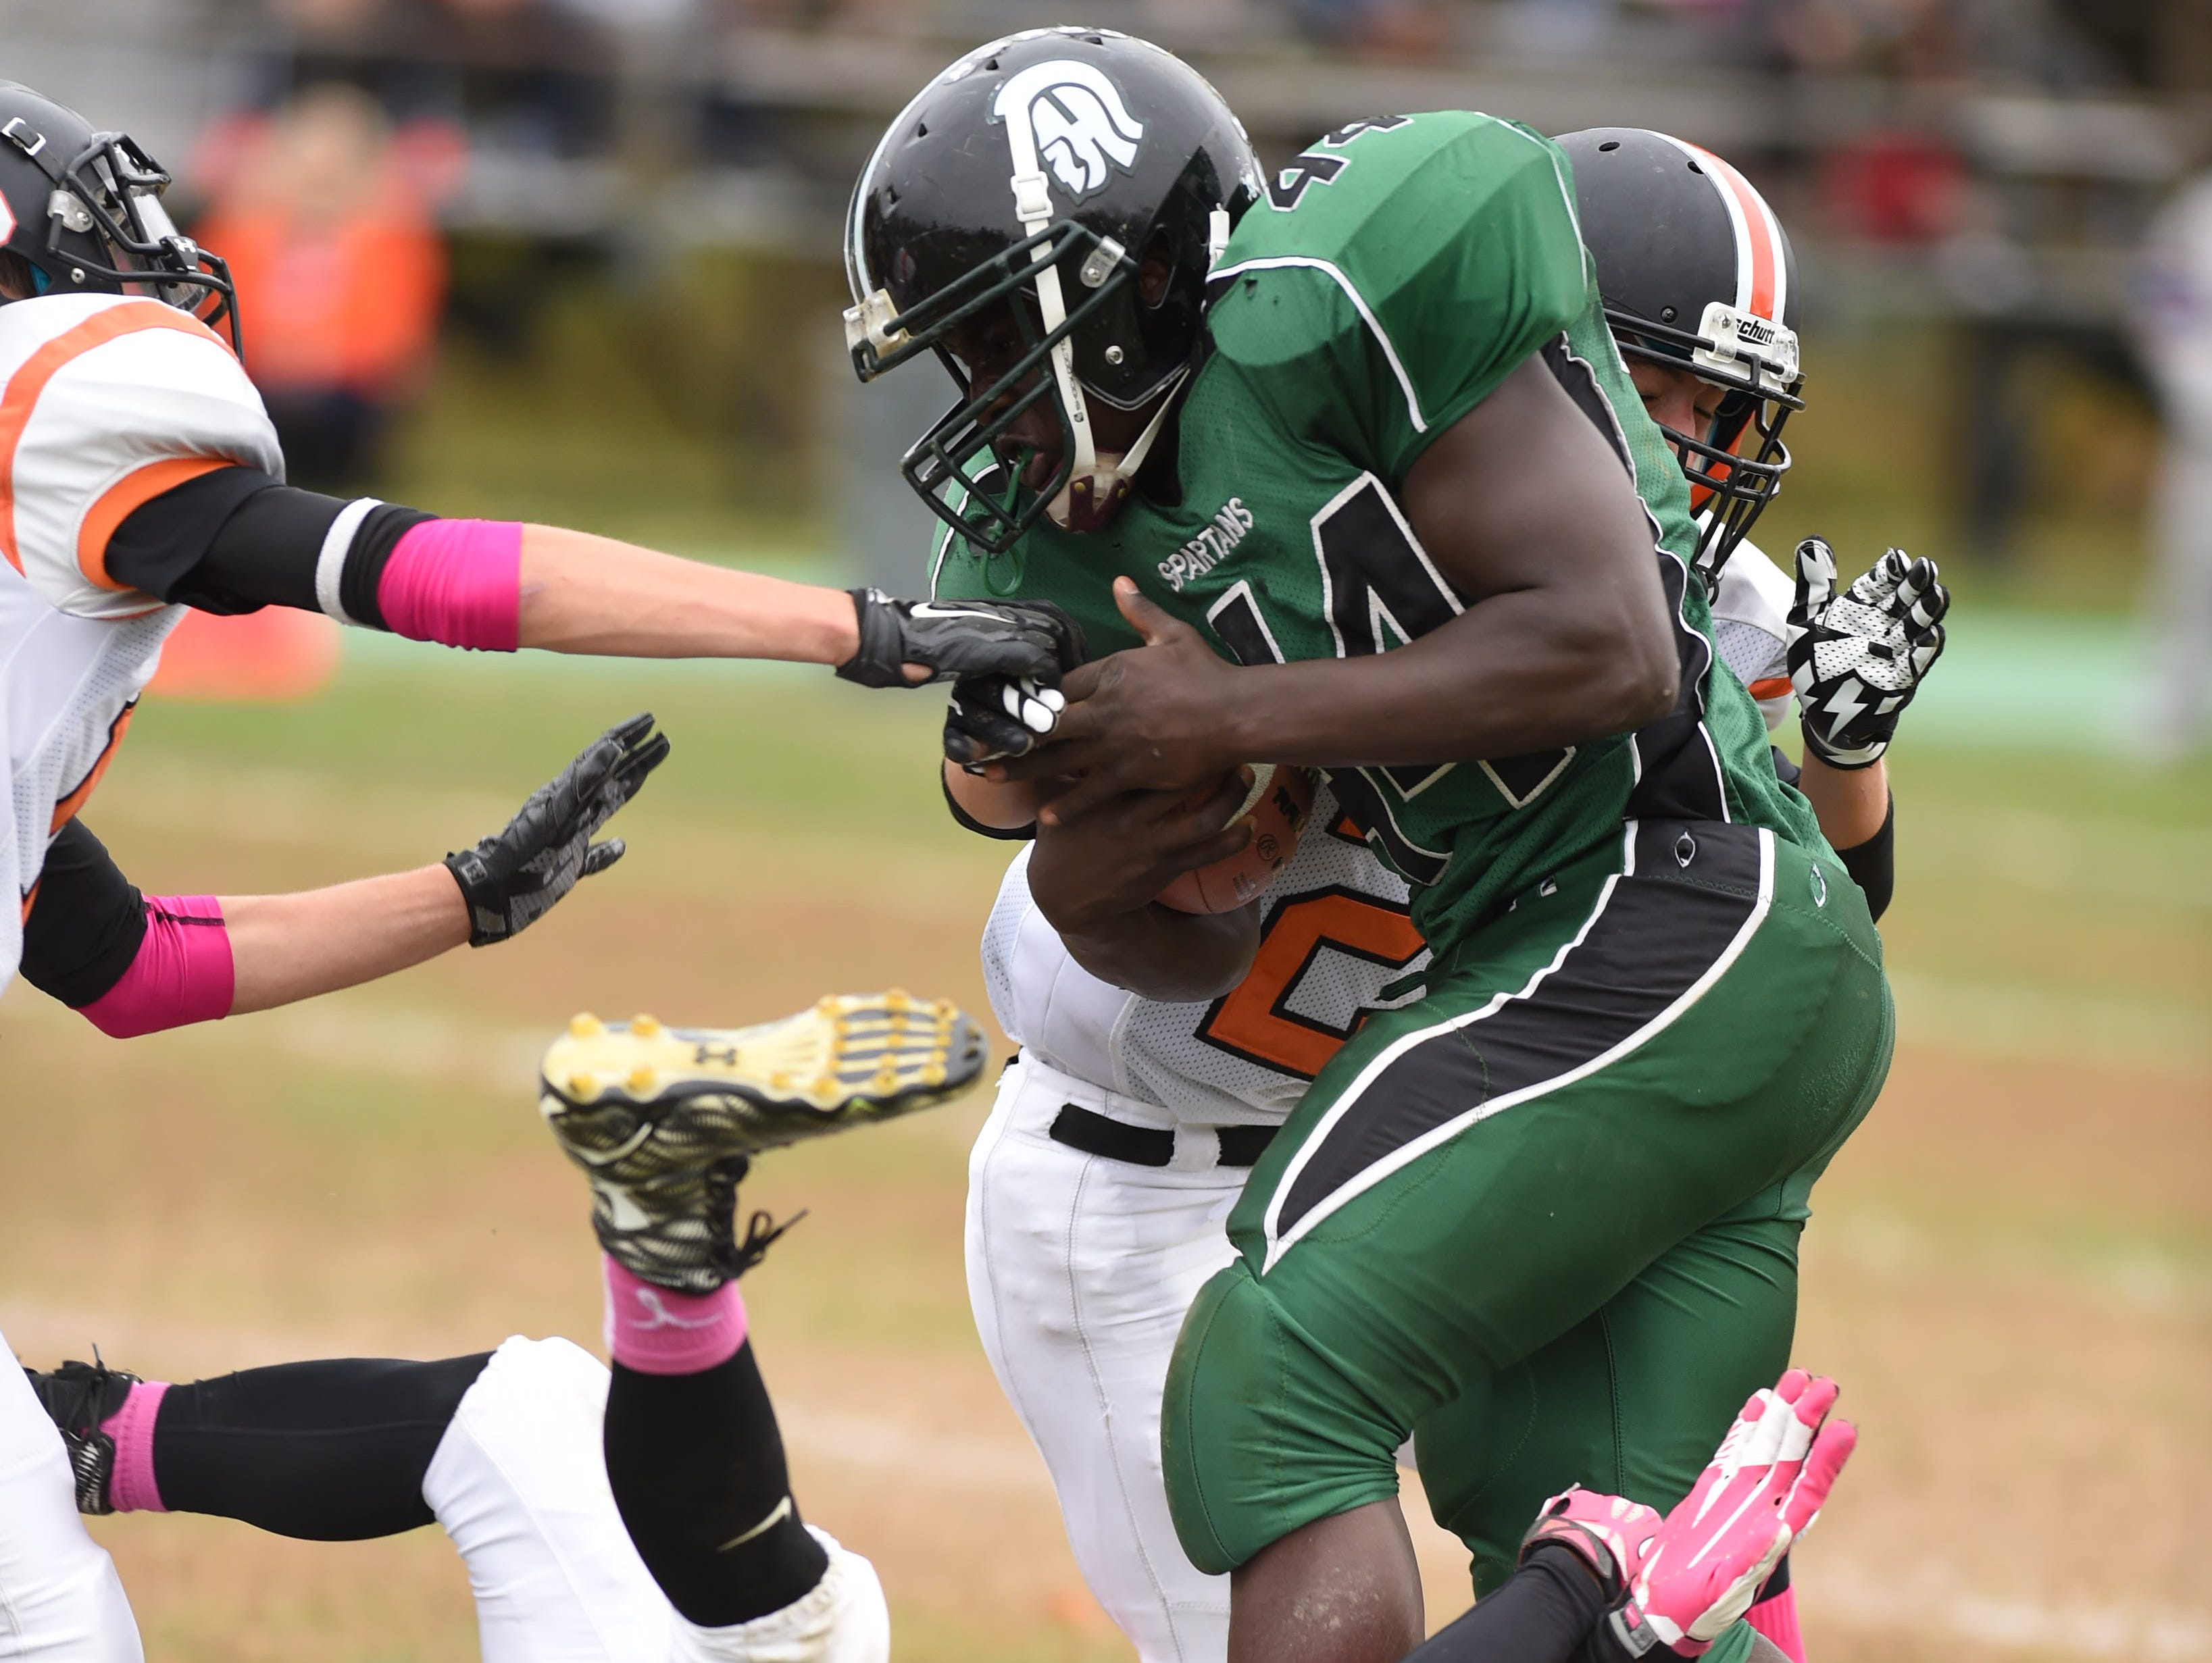 Spackenkill High School's Dhyquem Lewinson is swarmed by Dover tacklers during an Oct. 24, 2015 game.